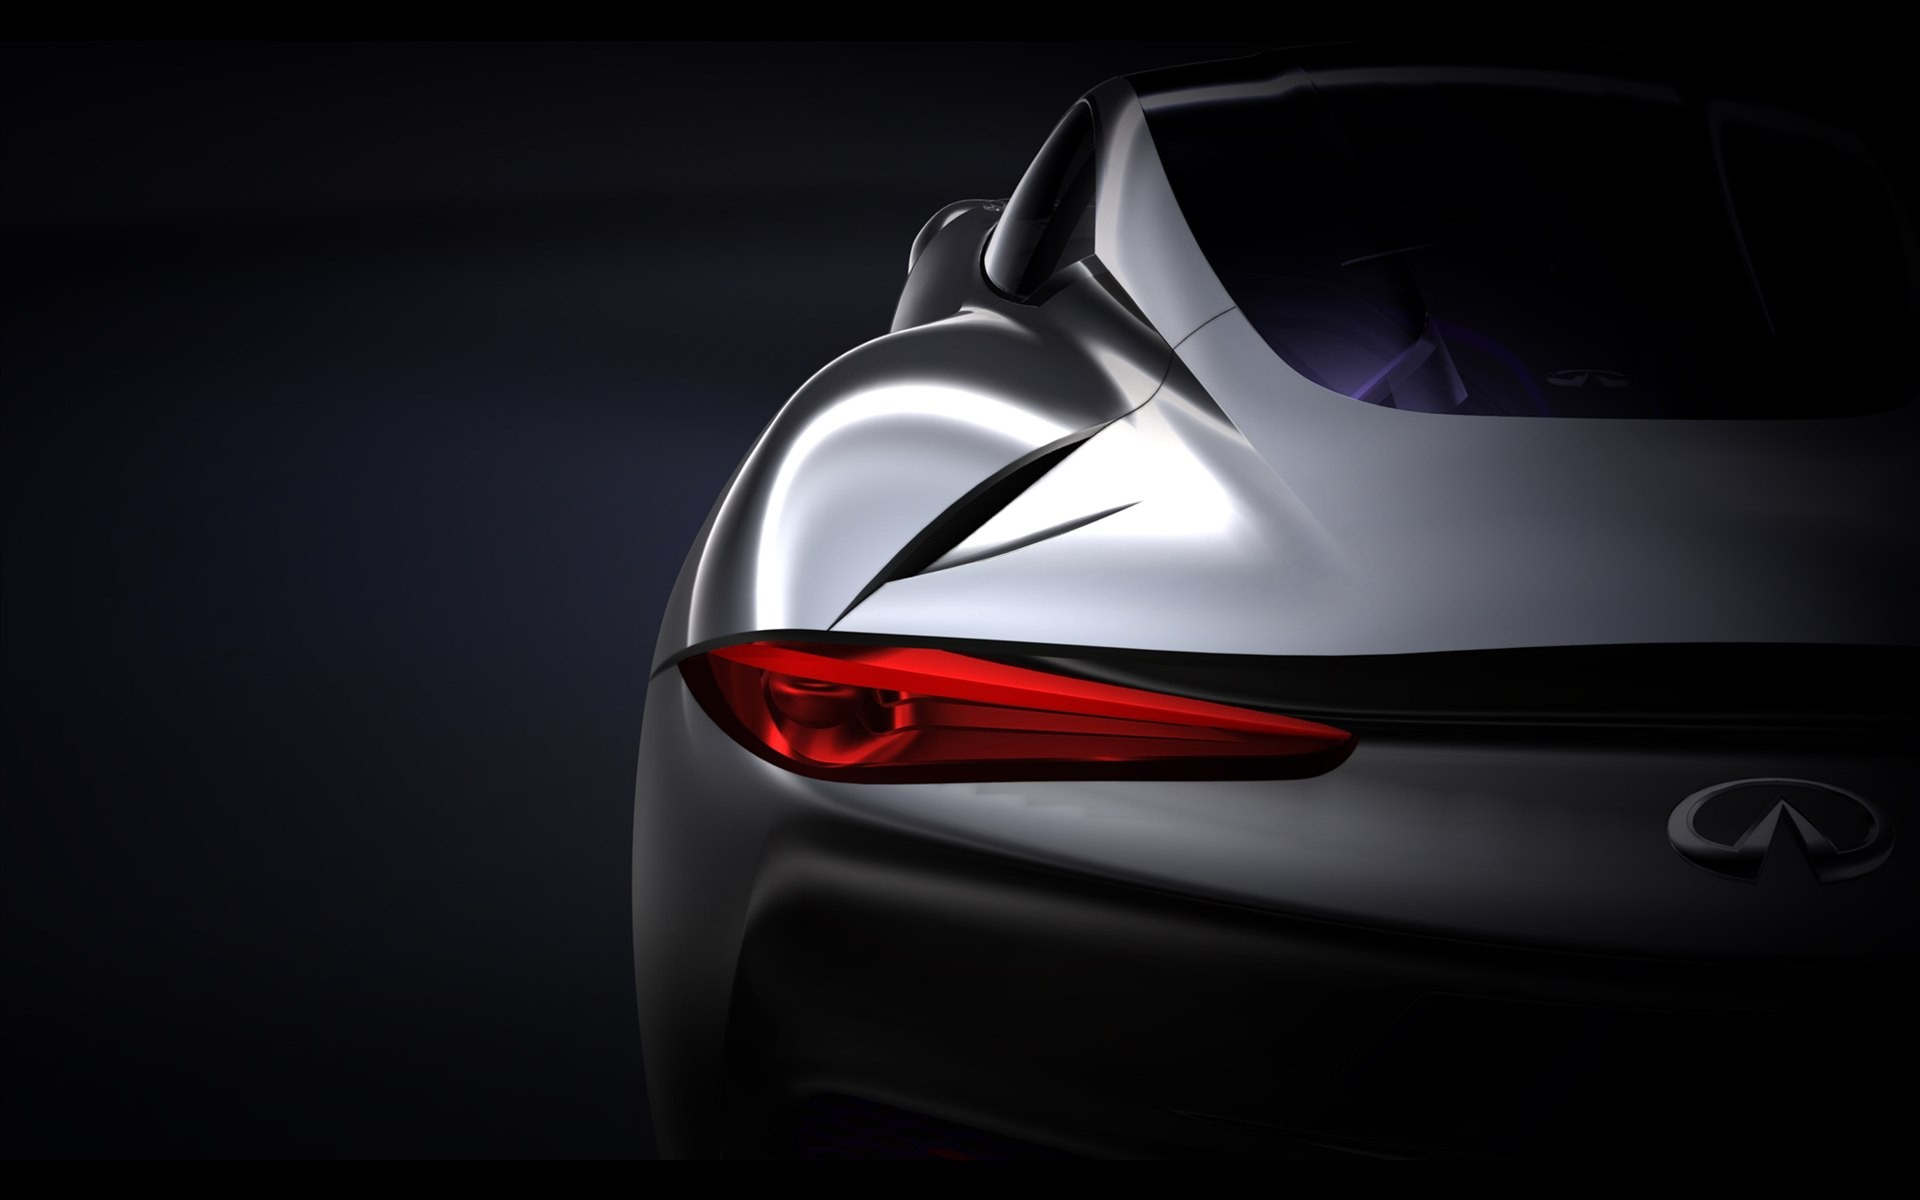 Infiniti Electric Sports Car 2012 Wallpaper Hd Car